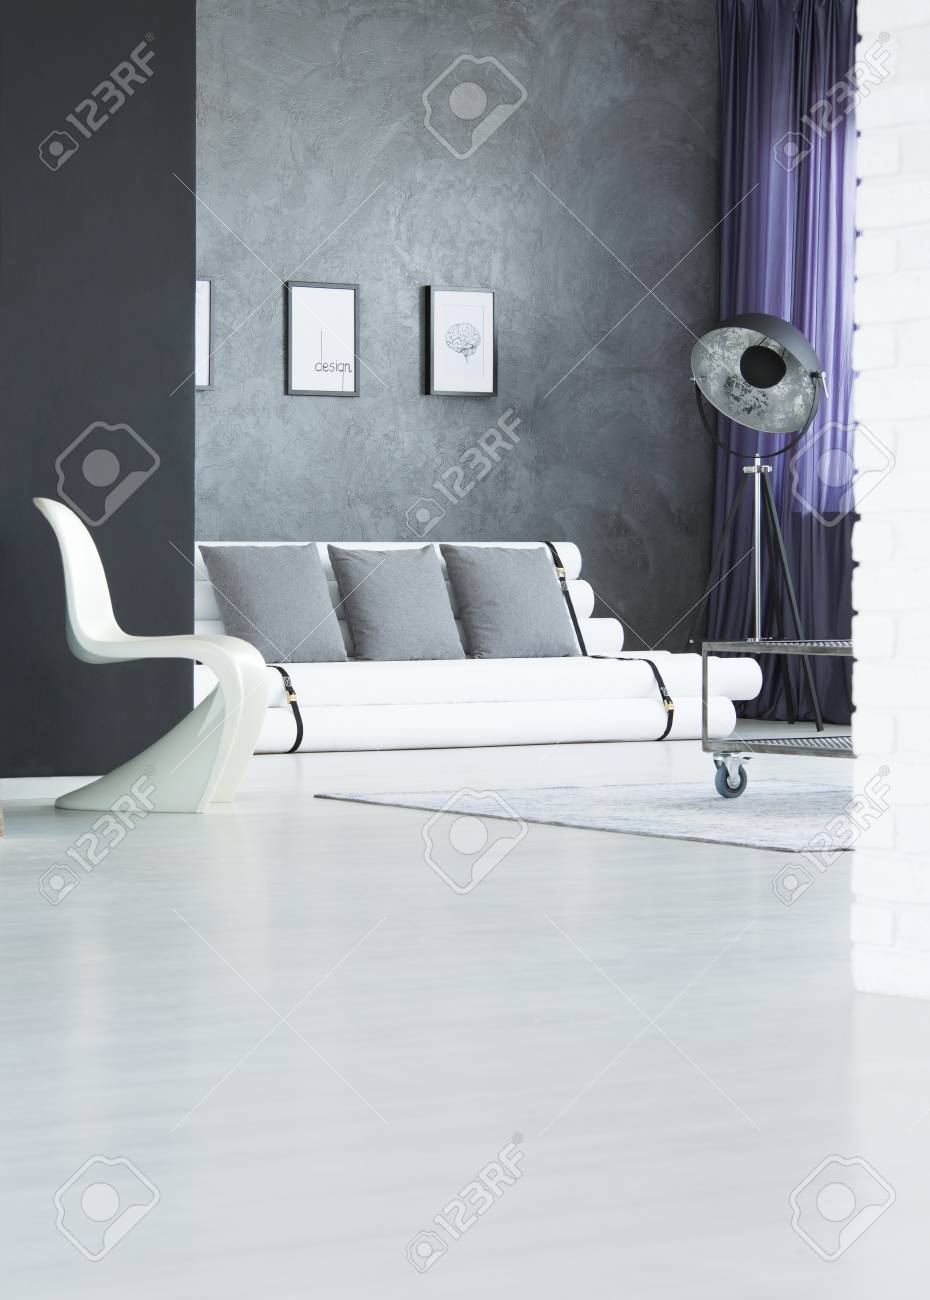 Designer Couch White Plastic Chair And Designer Sofa In Monochromatic Living